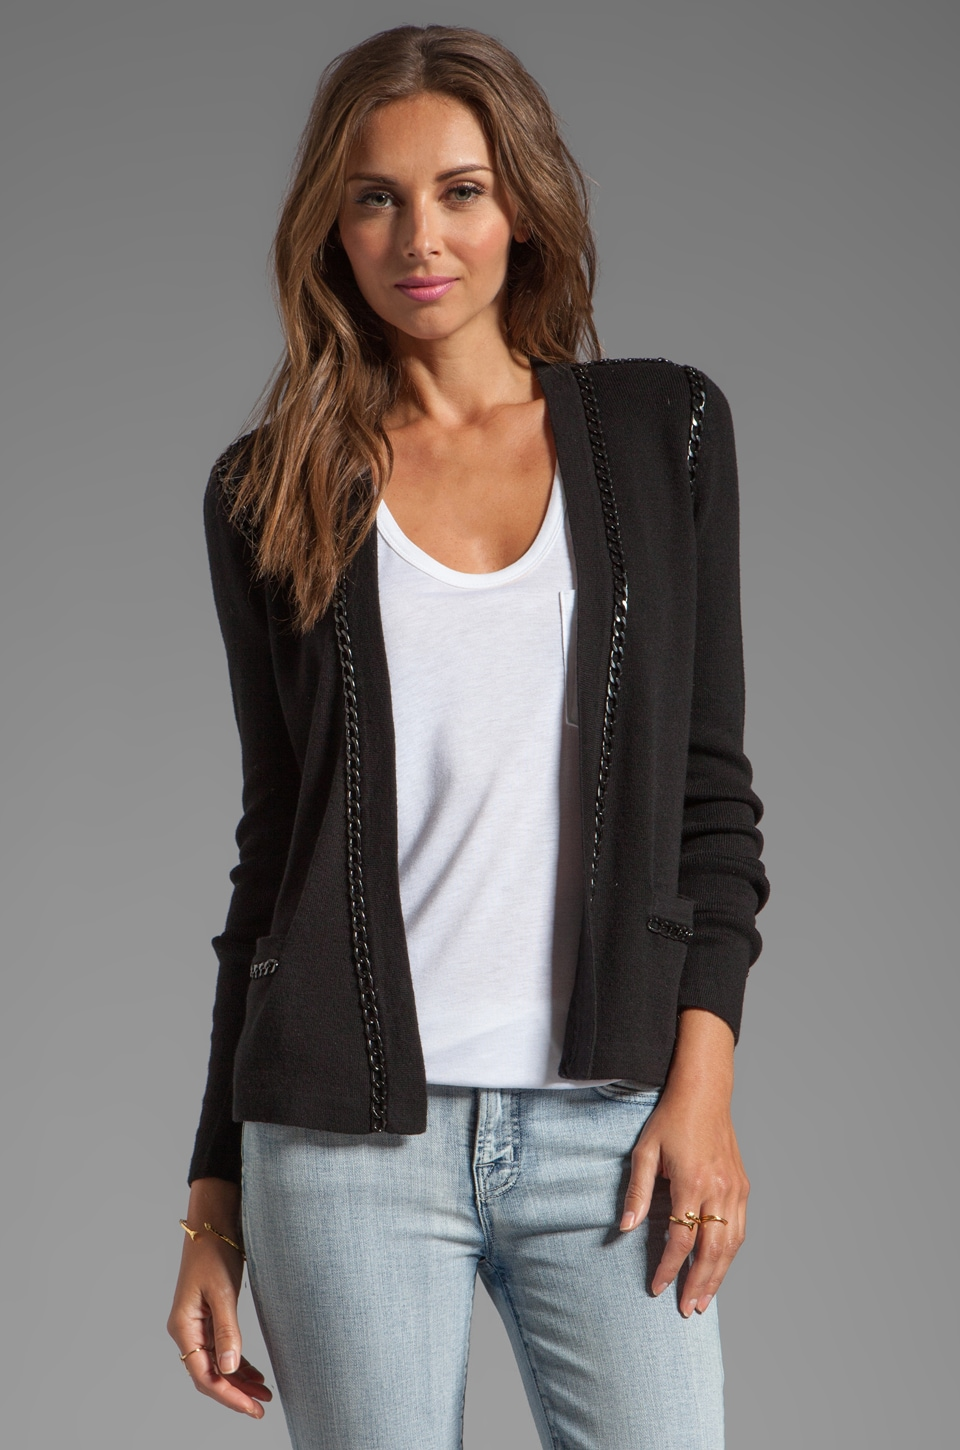 MILLY June Knits Kylie Open Chain Cardigan in Black